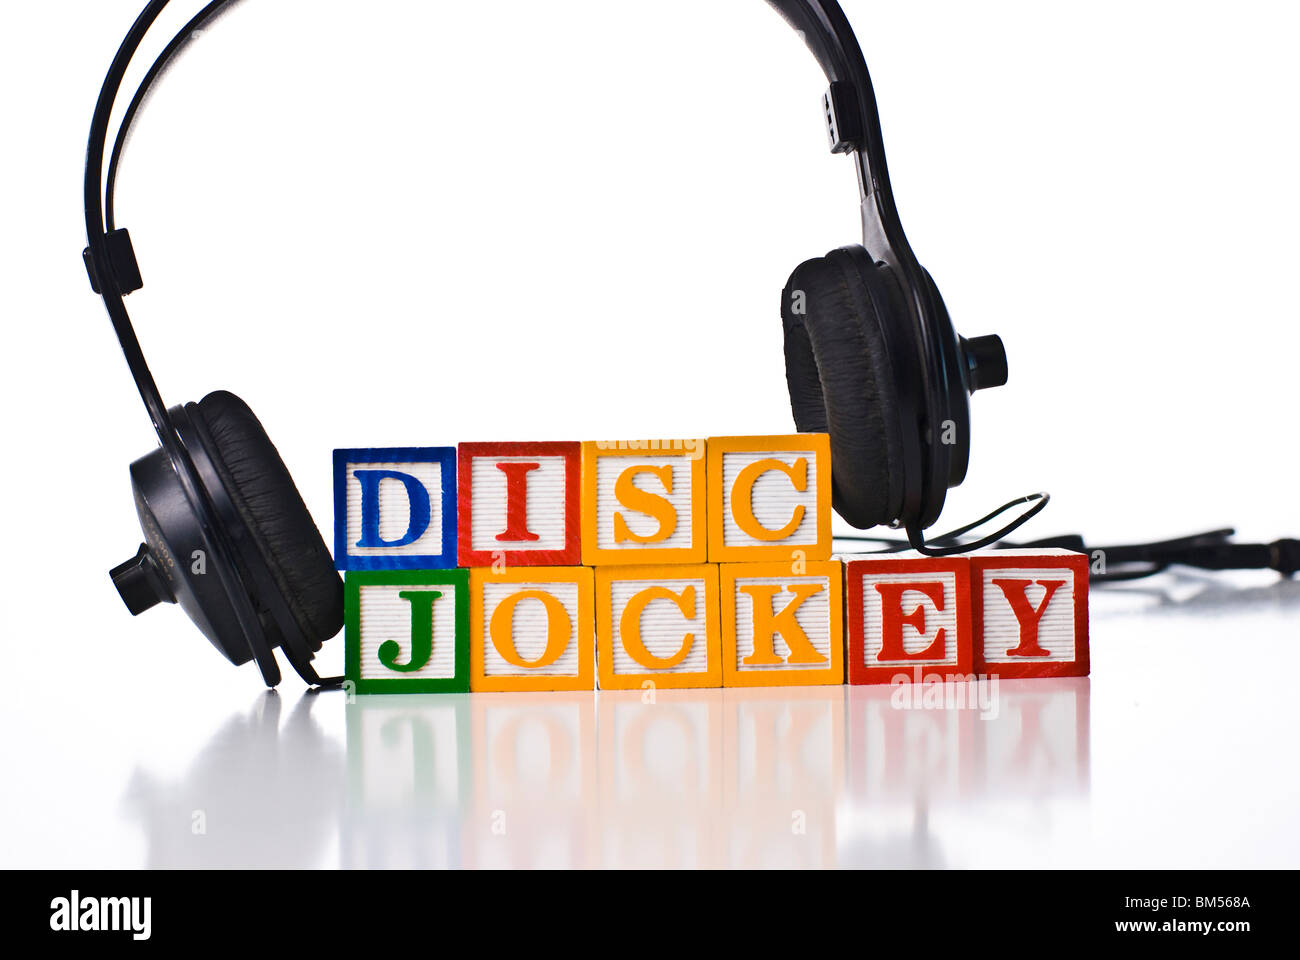 Colorful children's blocks spelling DISC JOCKEY with a set of headphones - Stock Image